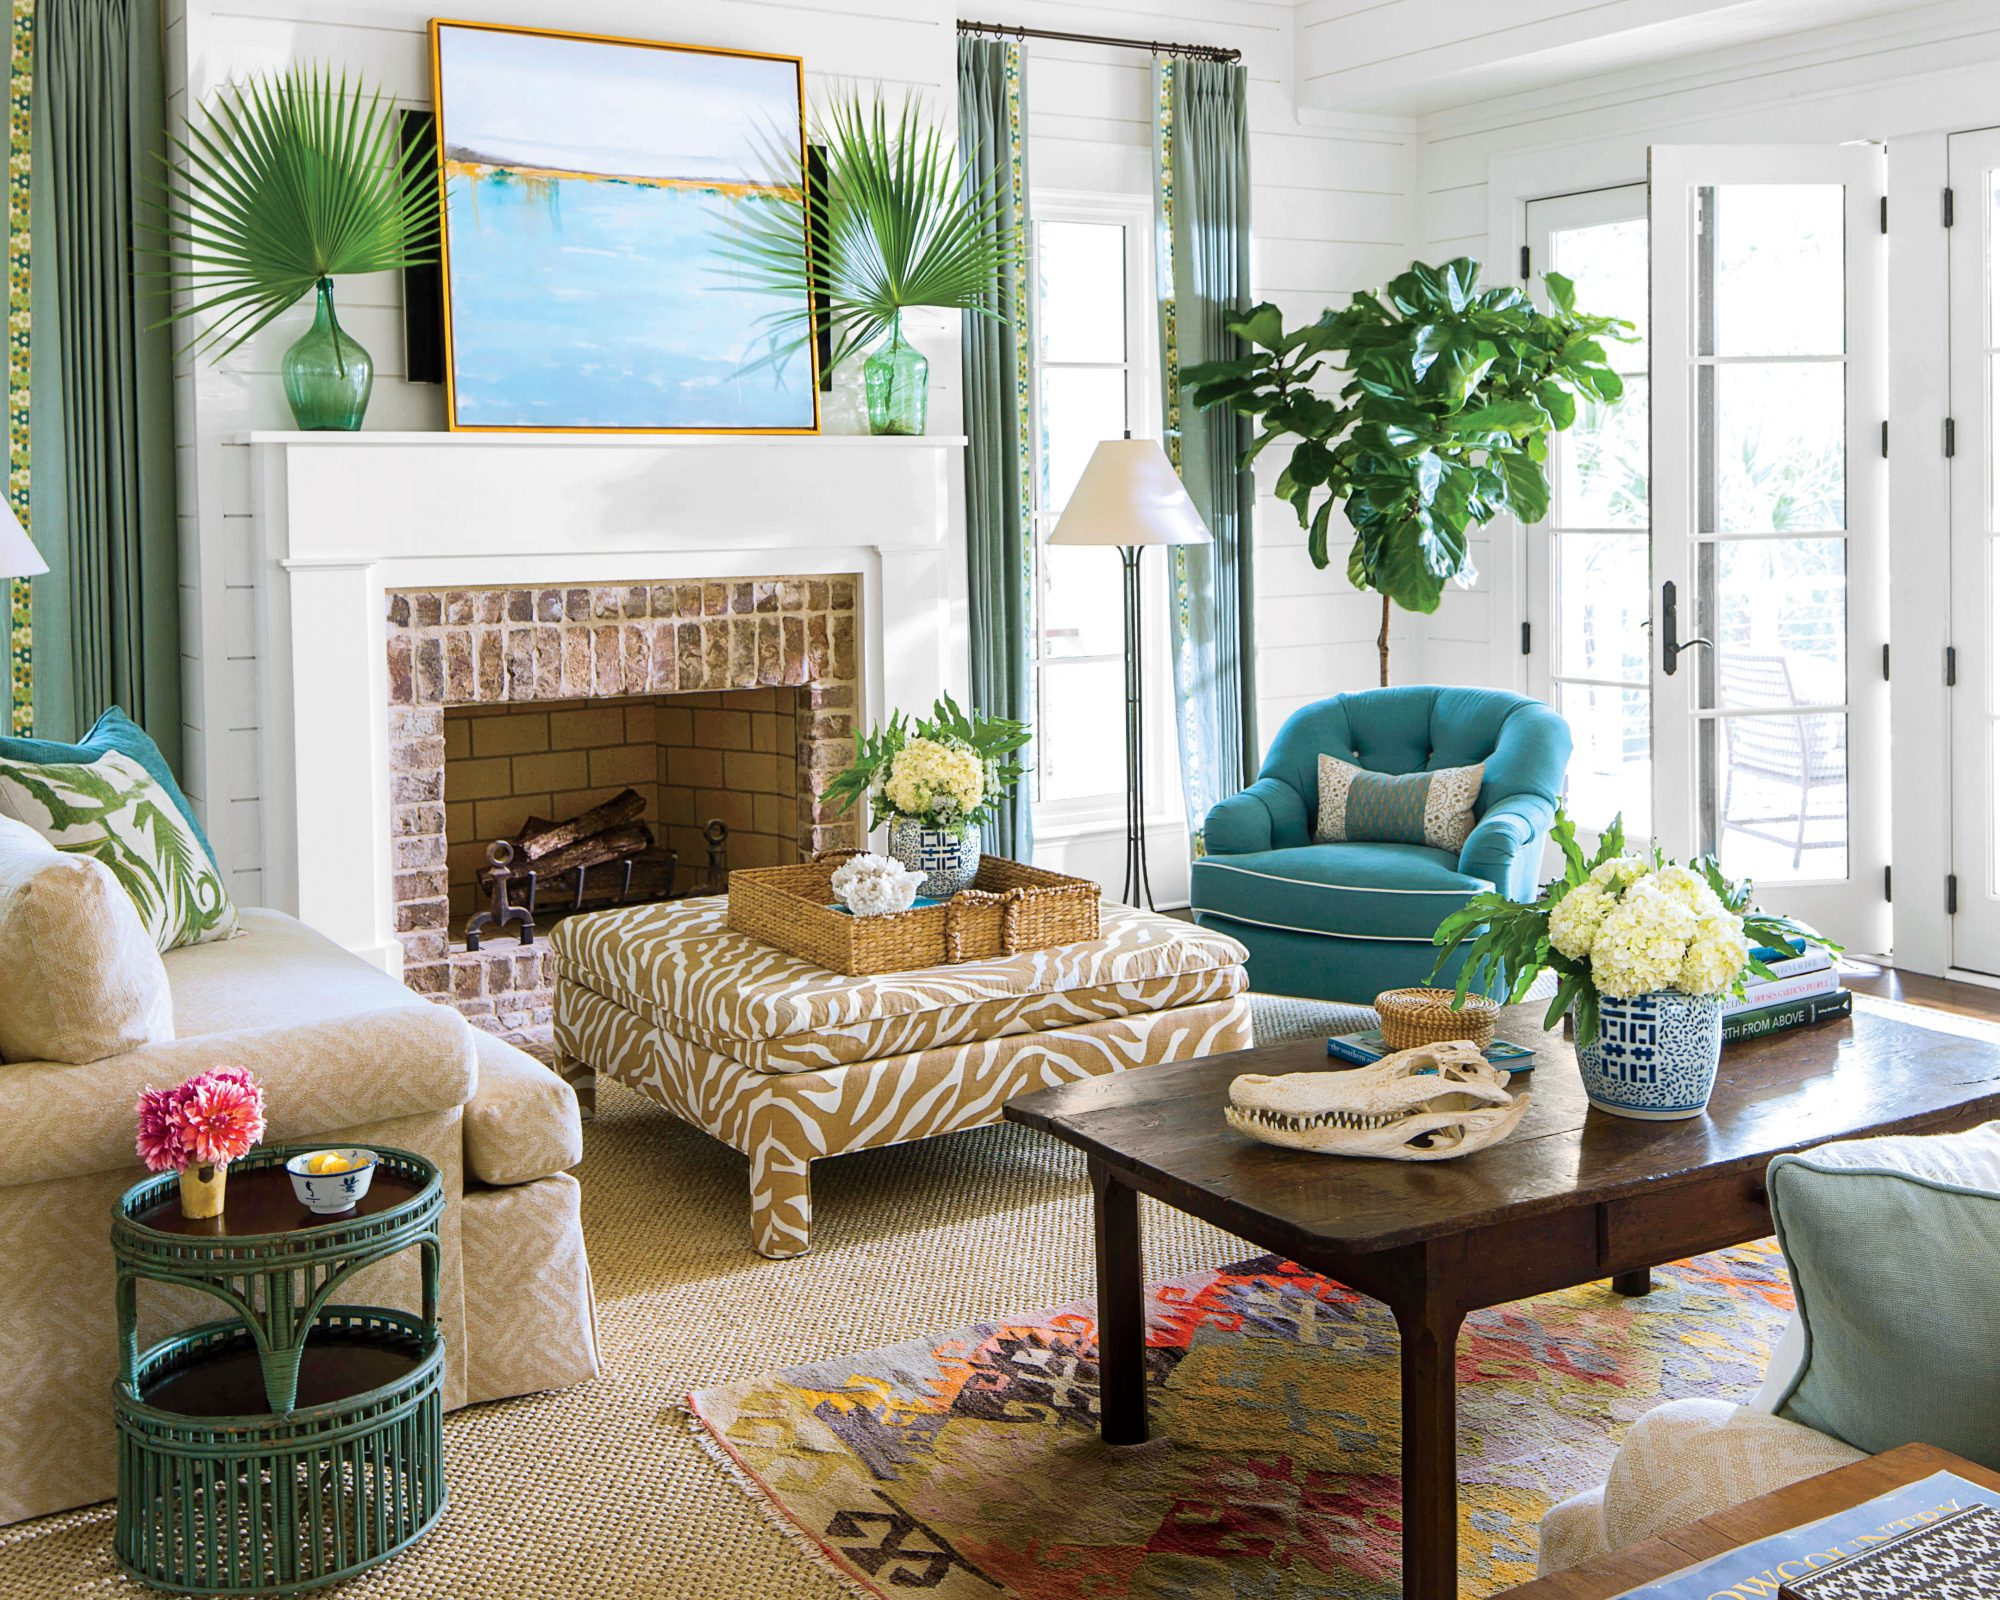 living room interior decorating ideas. Coastal Lowcountry Living Room 106 Decorating Ideas  Southern